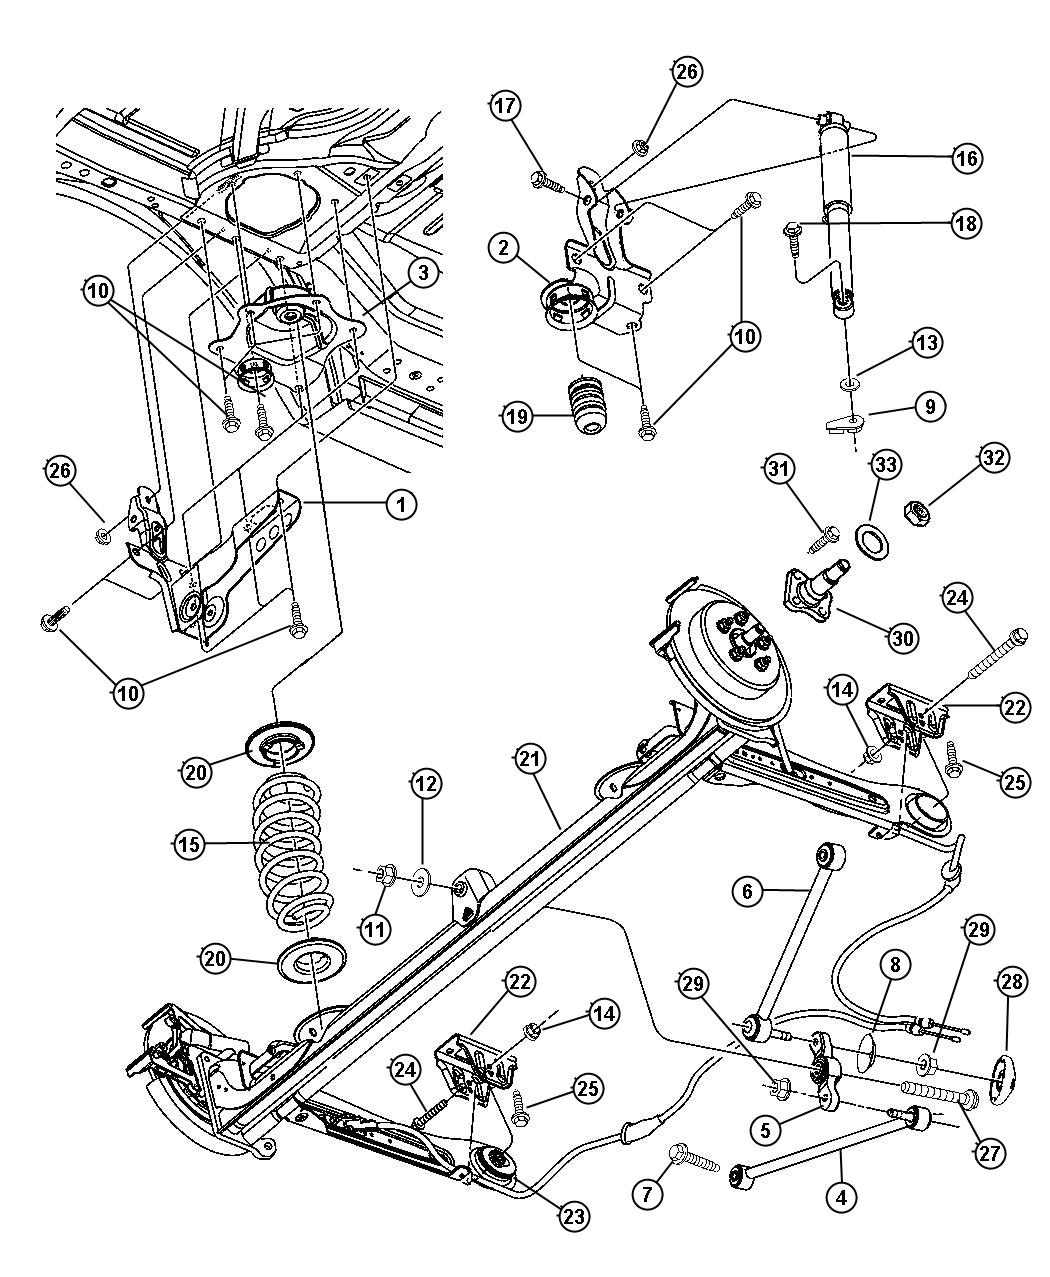 Sujet3493 as well Watch furthermore 08 Crown Vic Radio Wiring Diagram furthermore 2014 Dodge 2500 Ram Fuse Box Location further 2000 Dodge Intrepid Wiring Diagram. on 2000 chrysler concorde fuse box diagram